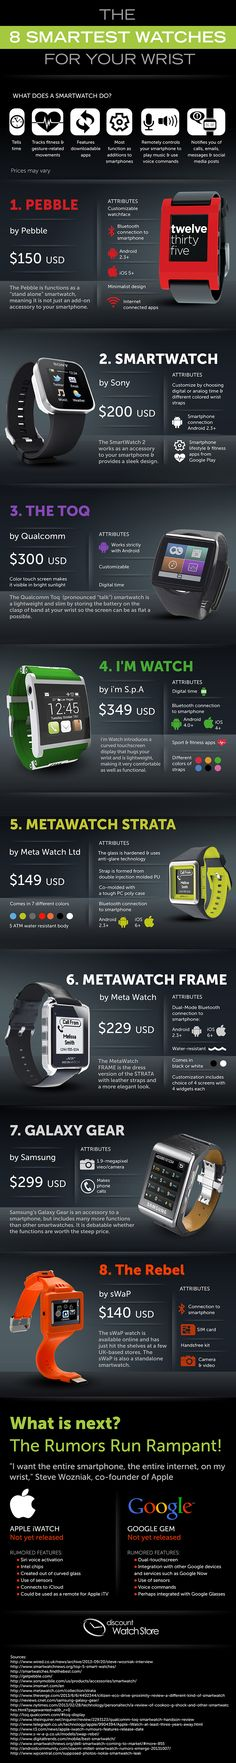 The new world of smart watches is exciting, but it can be confusing. Check out our infographic to learn what smart watches are, the different types a Please follow us @ http://www.pinterest.com/jeniferkane01/